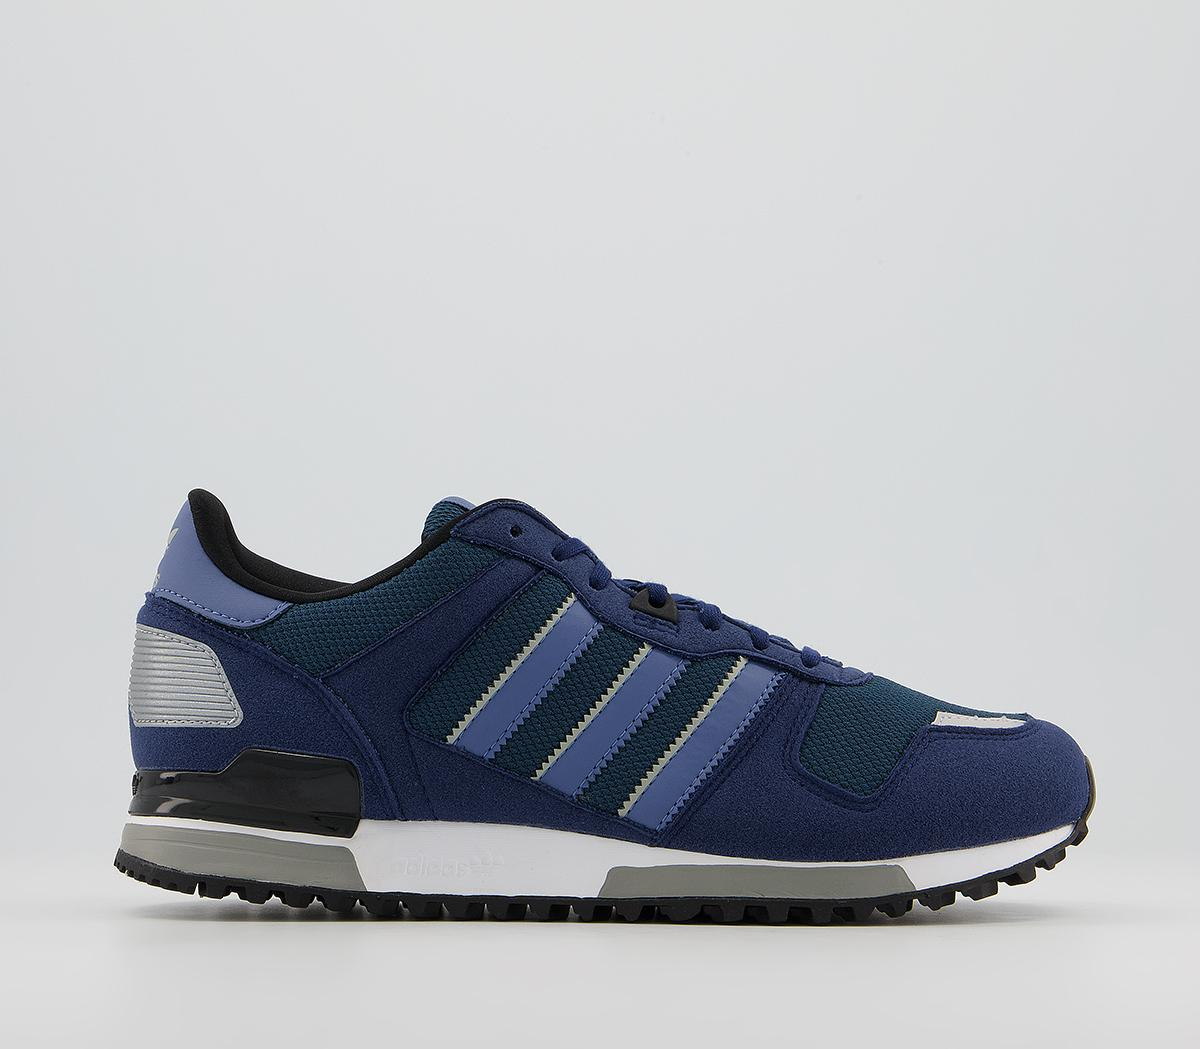 Zx 700 Trainers